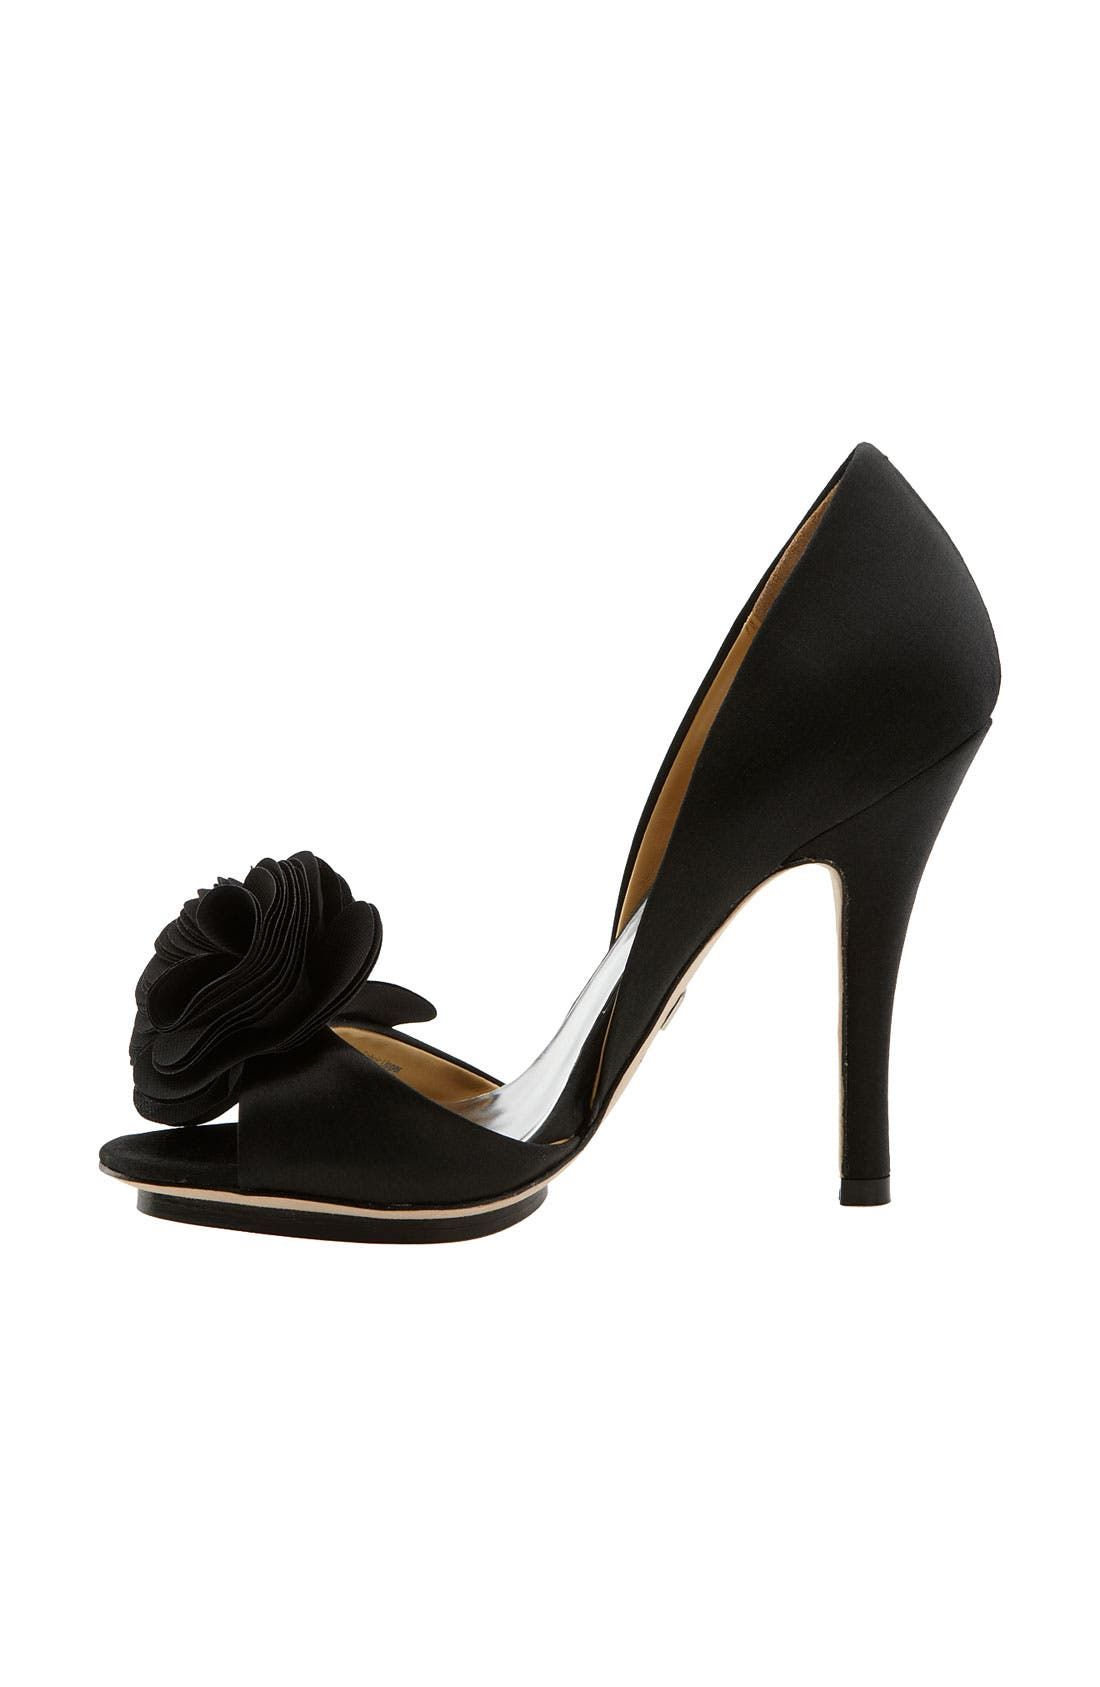 BADGLEY MISCHKA COLLECTION,                             Badgley Mischka 'Randall' Pump,                             Alternate thumbnail 4, color,                             015